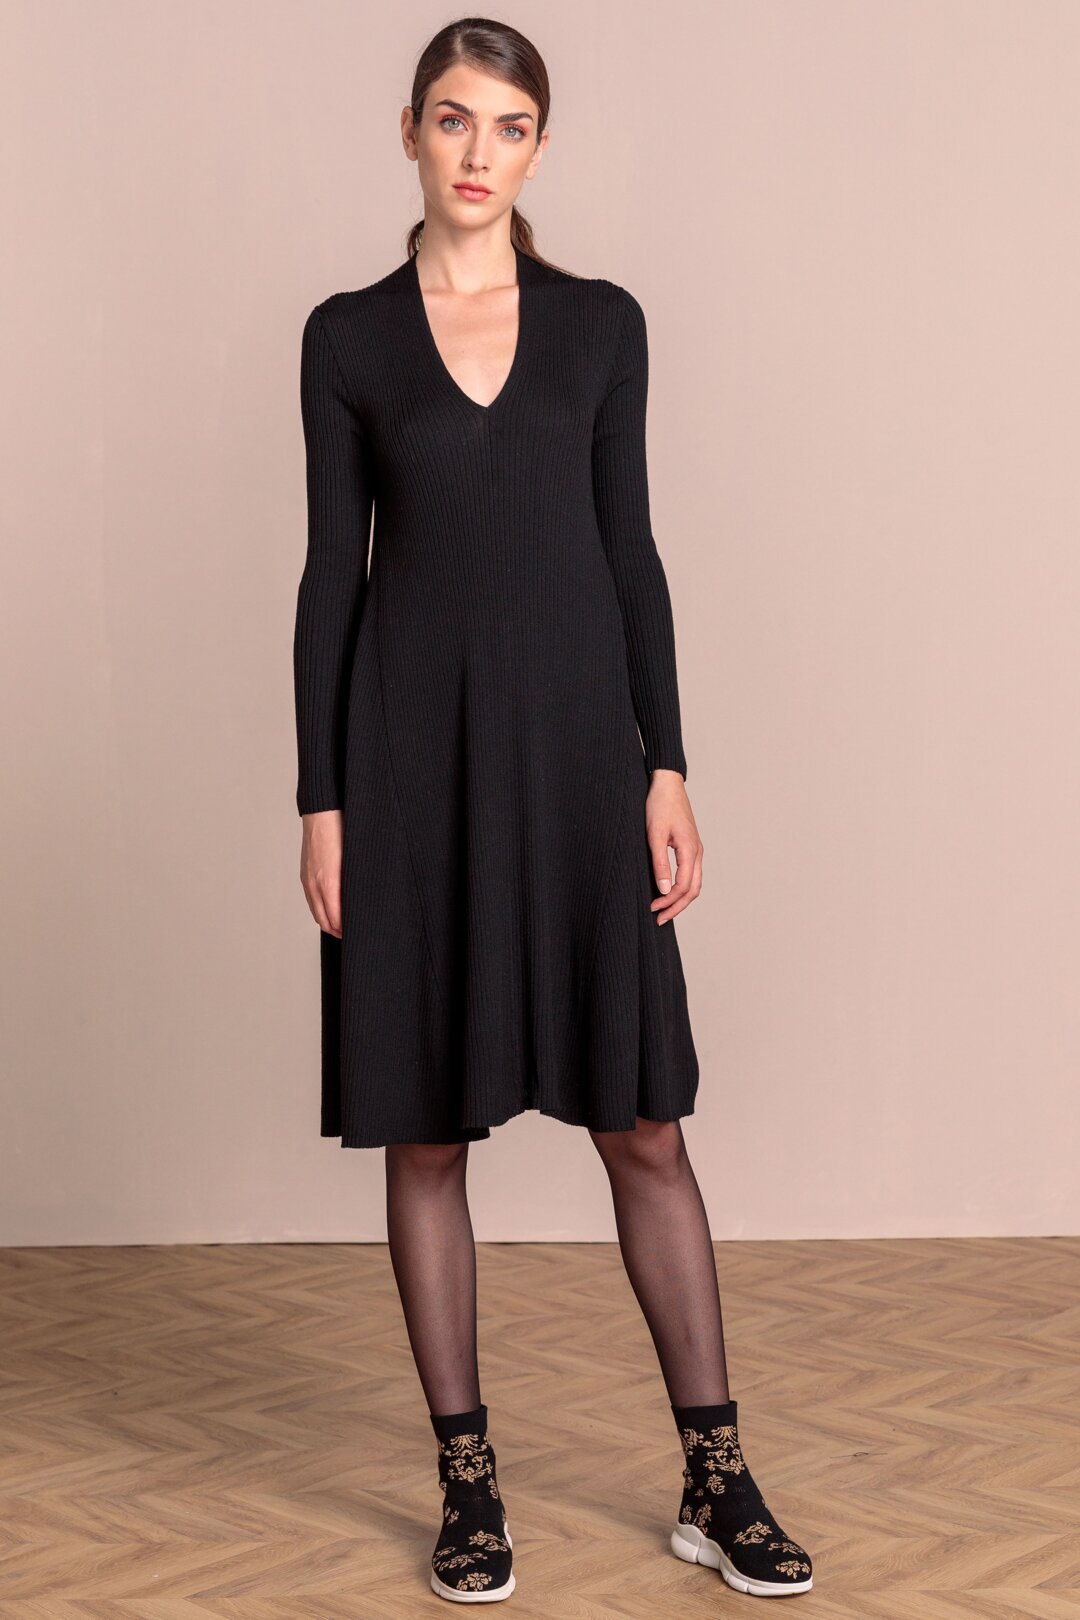 outfit-7c8a8181